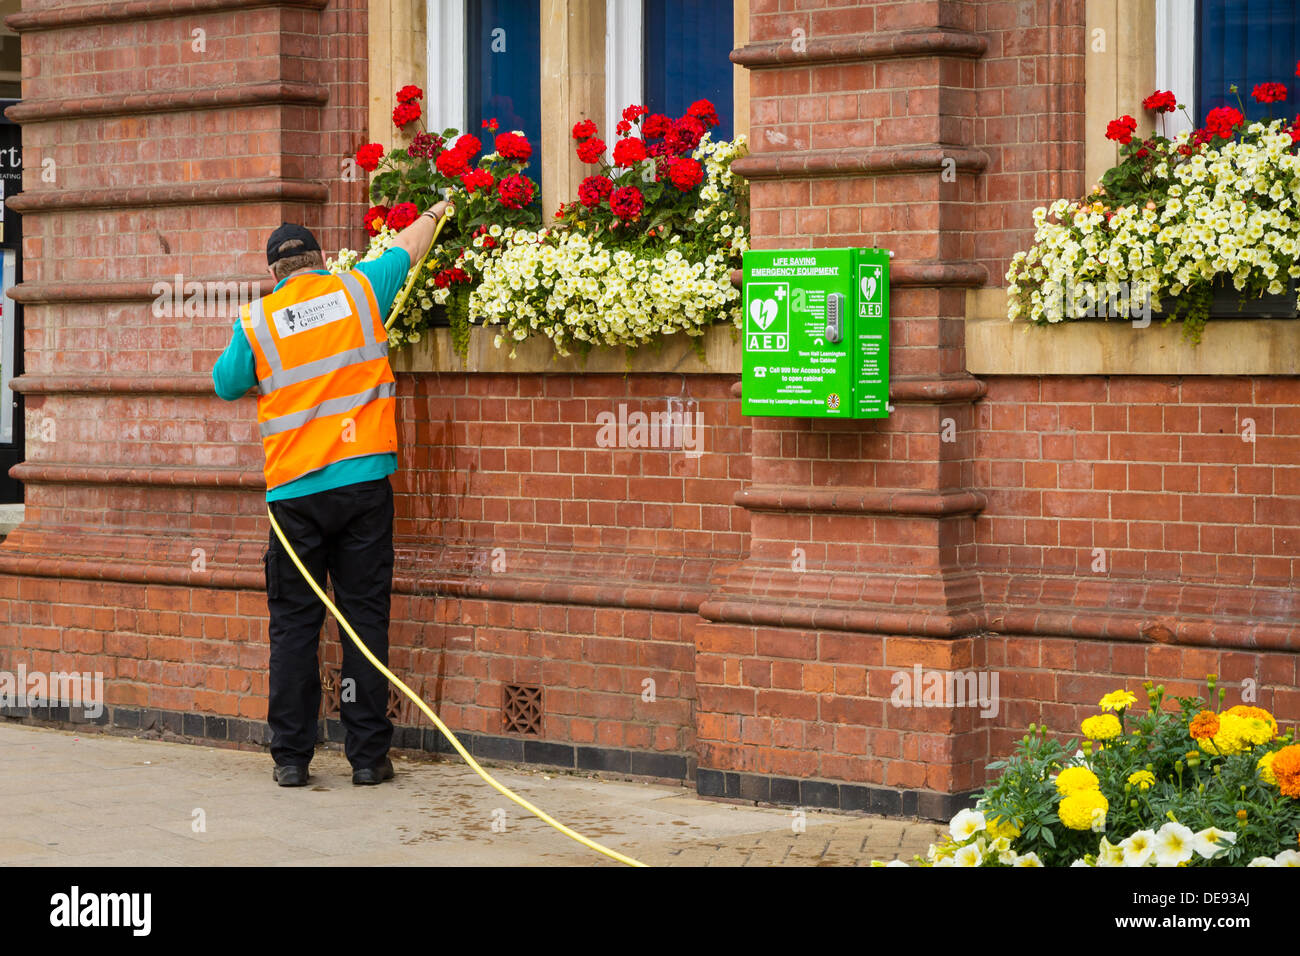 A council worker watering flowers of the Town Hall in Royal Leamington Spa, Warwickshire. Also includes a public defibrillator. - Stock Image